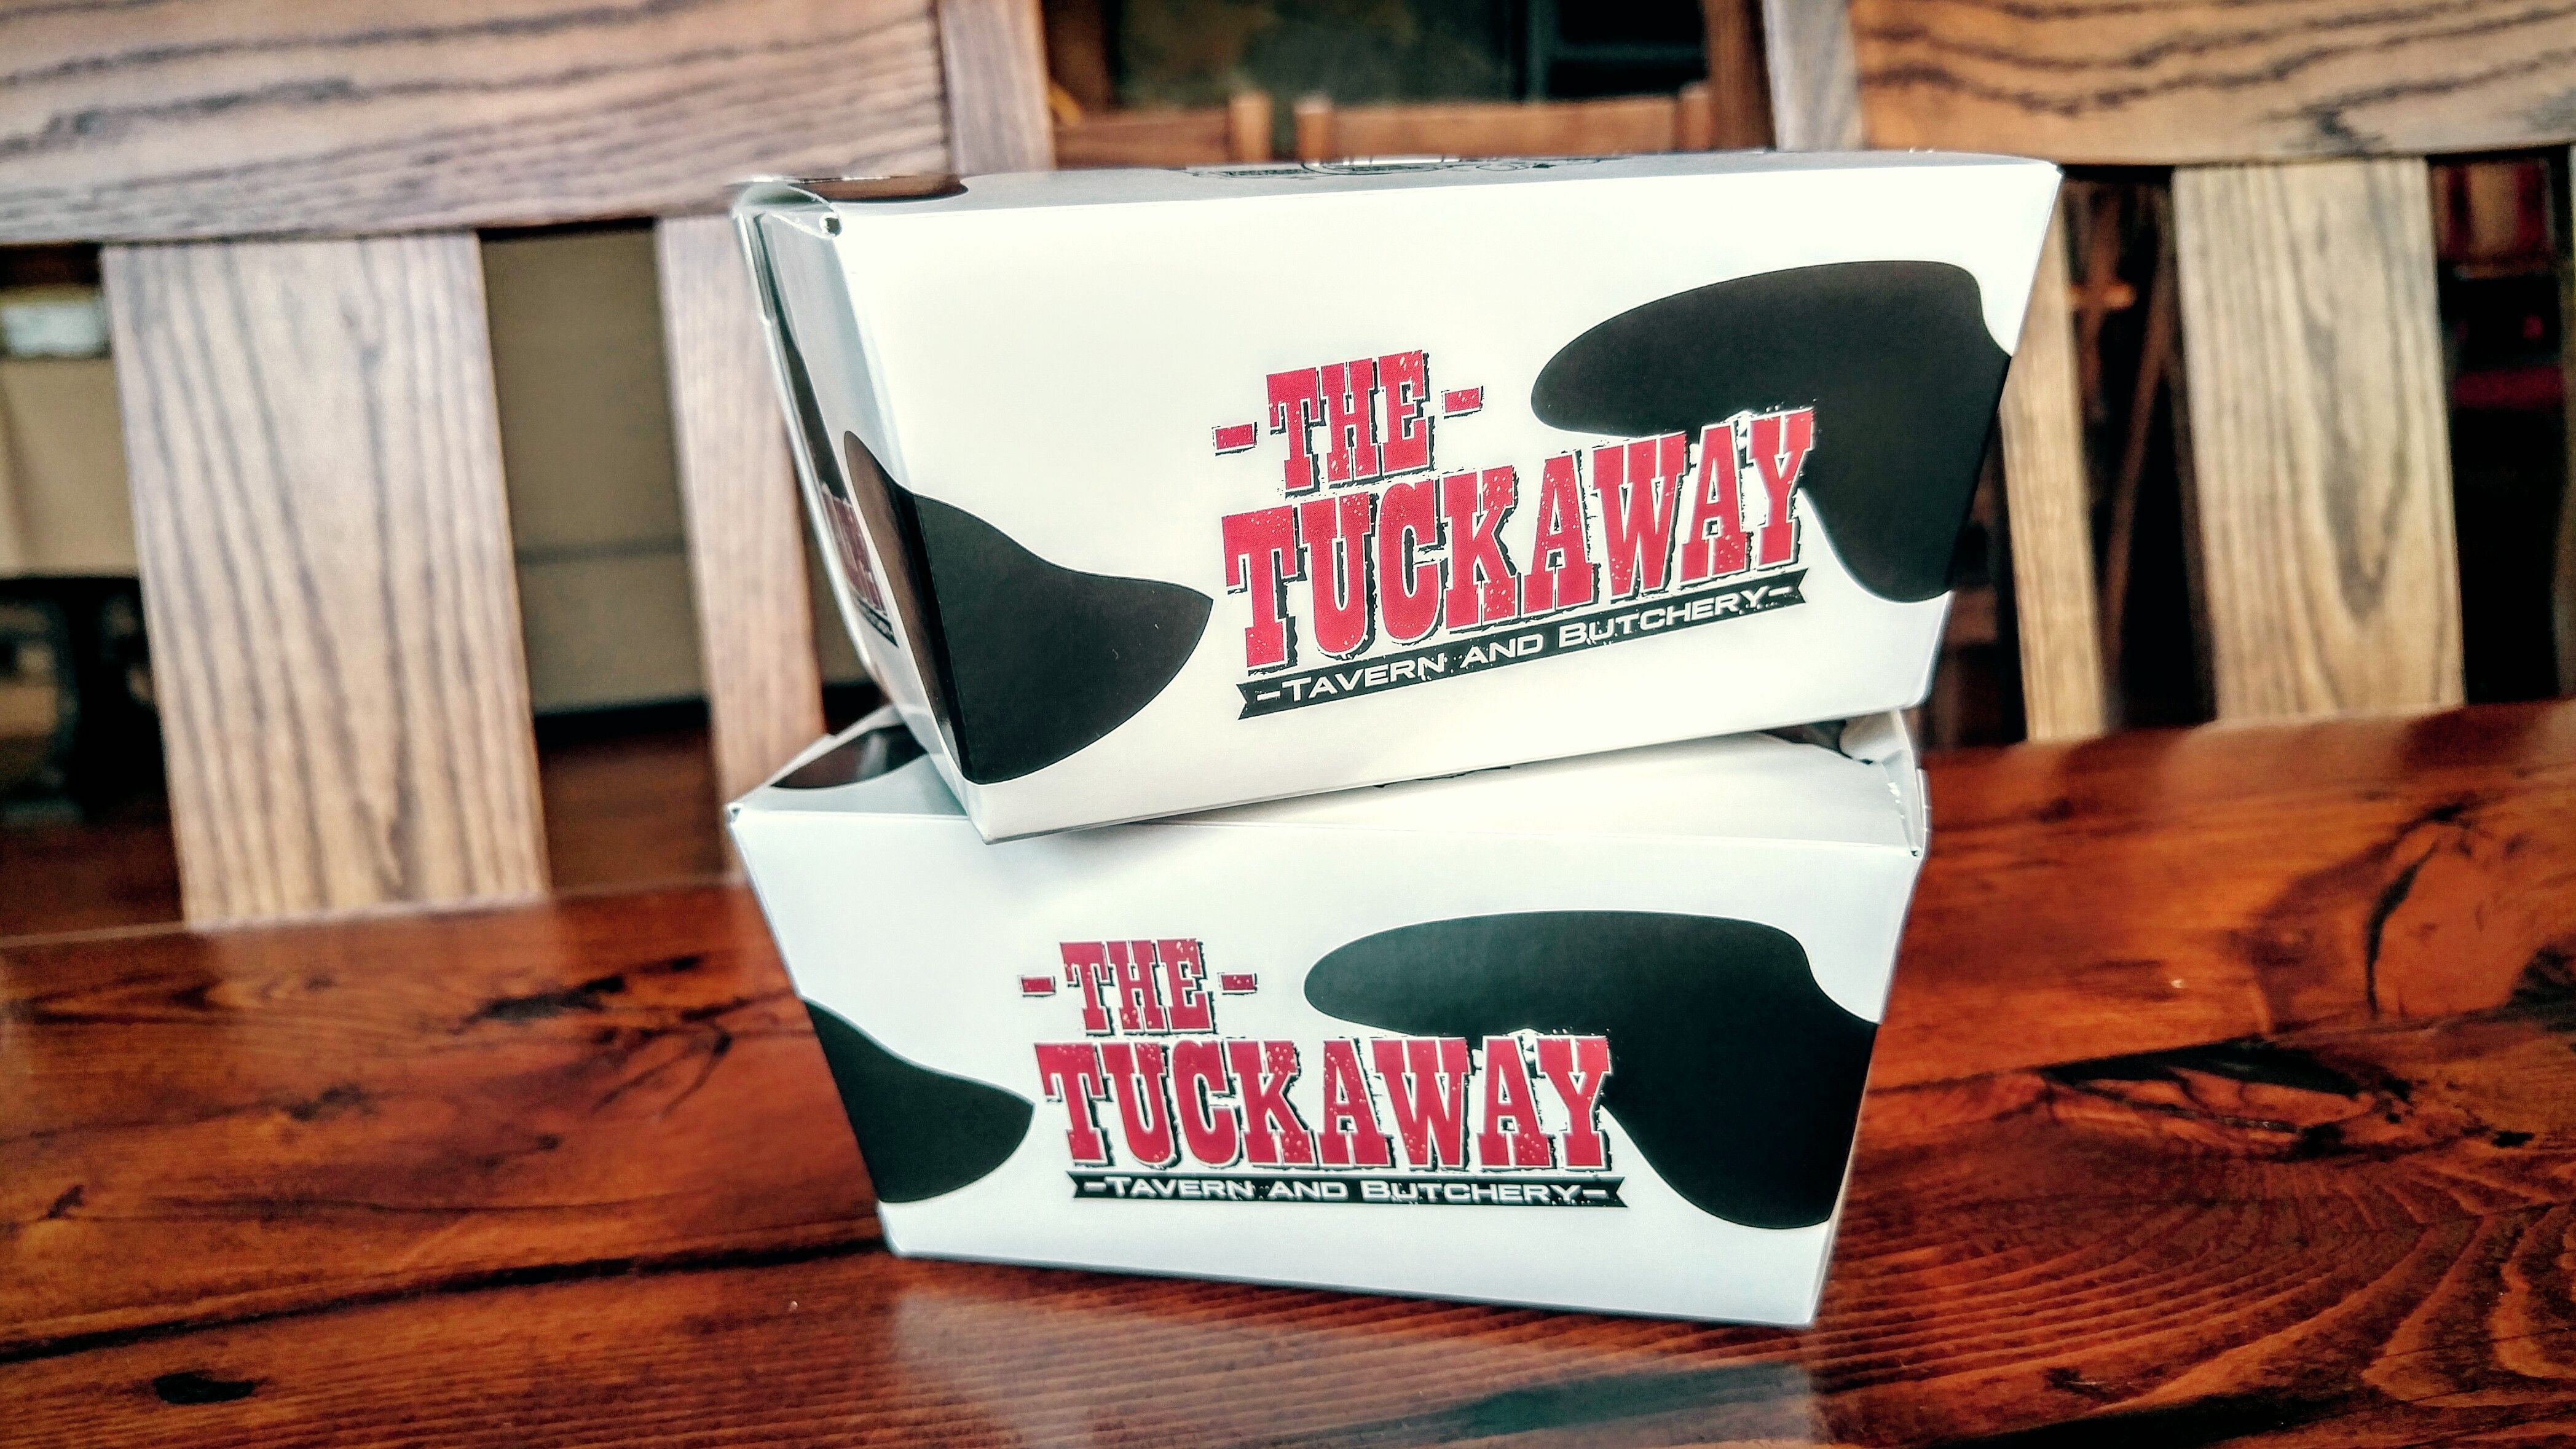 Day ride for lunch:The Tuckaway Tavern